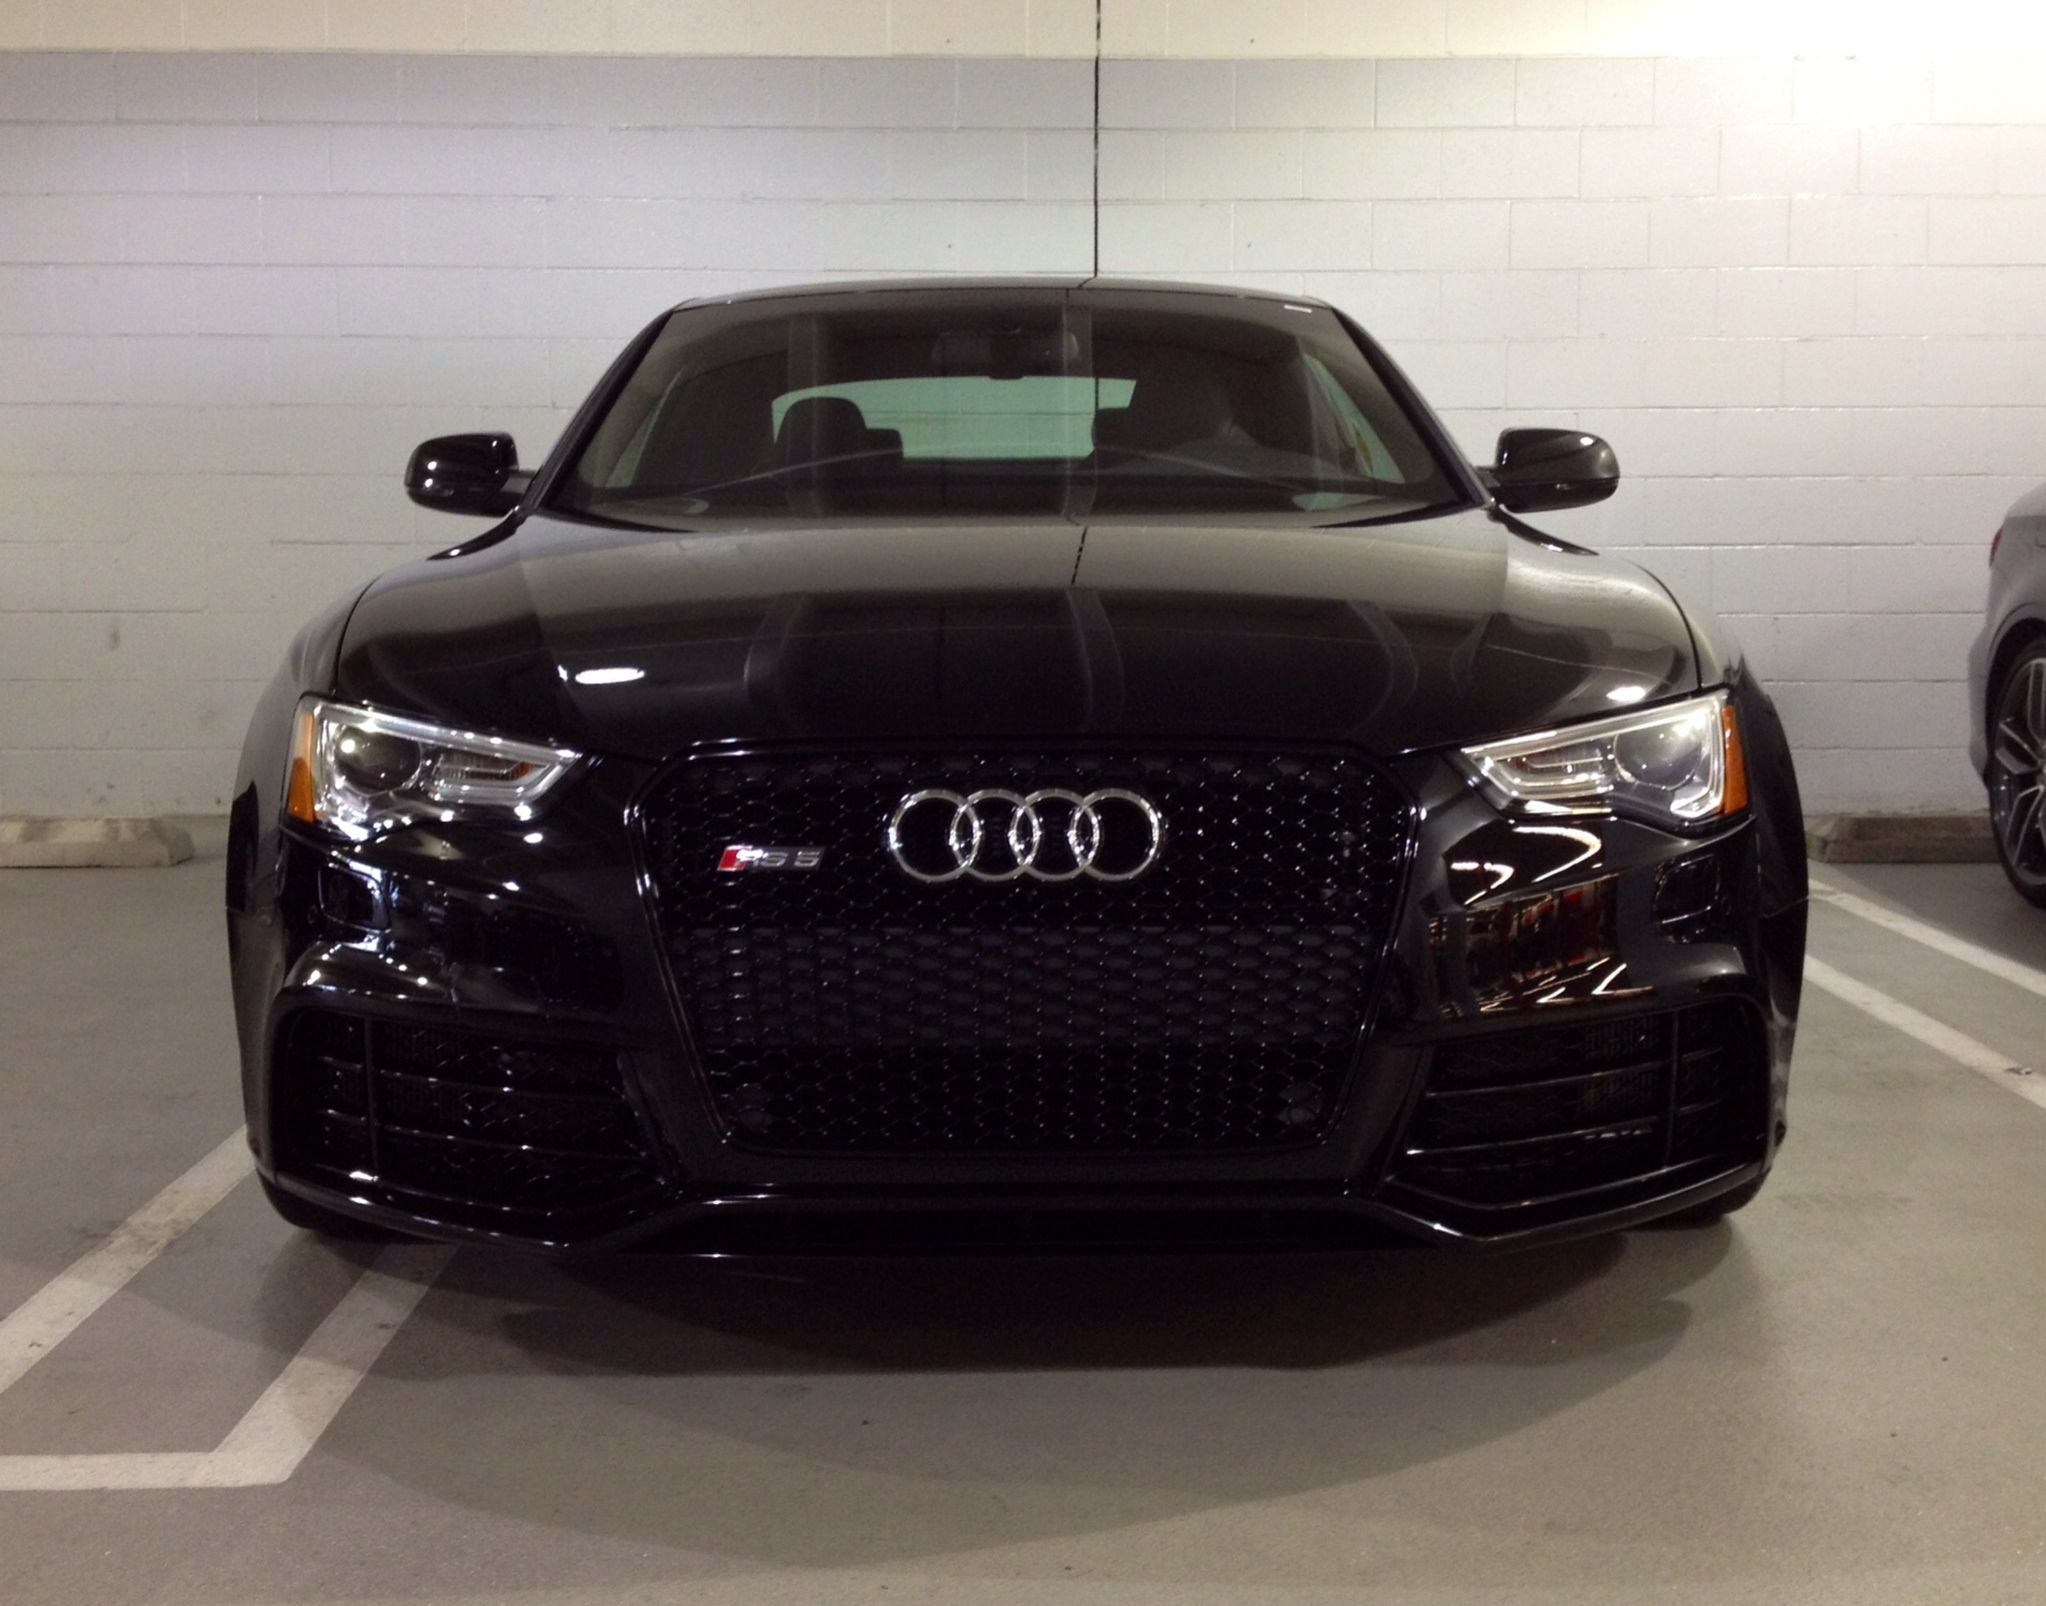 Come See This Menacing 2015 Audi RS5 In Mythos Black Metallic In Our  Showroom, It